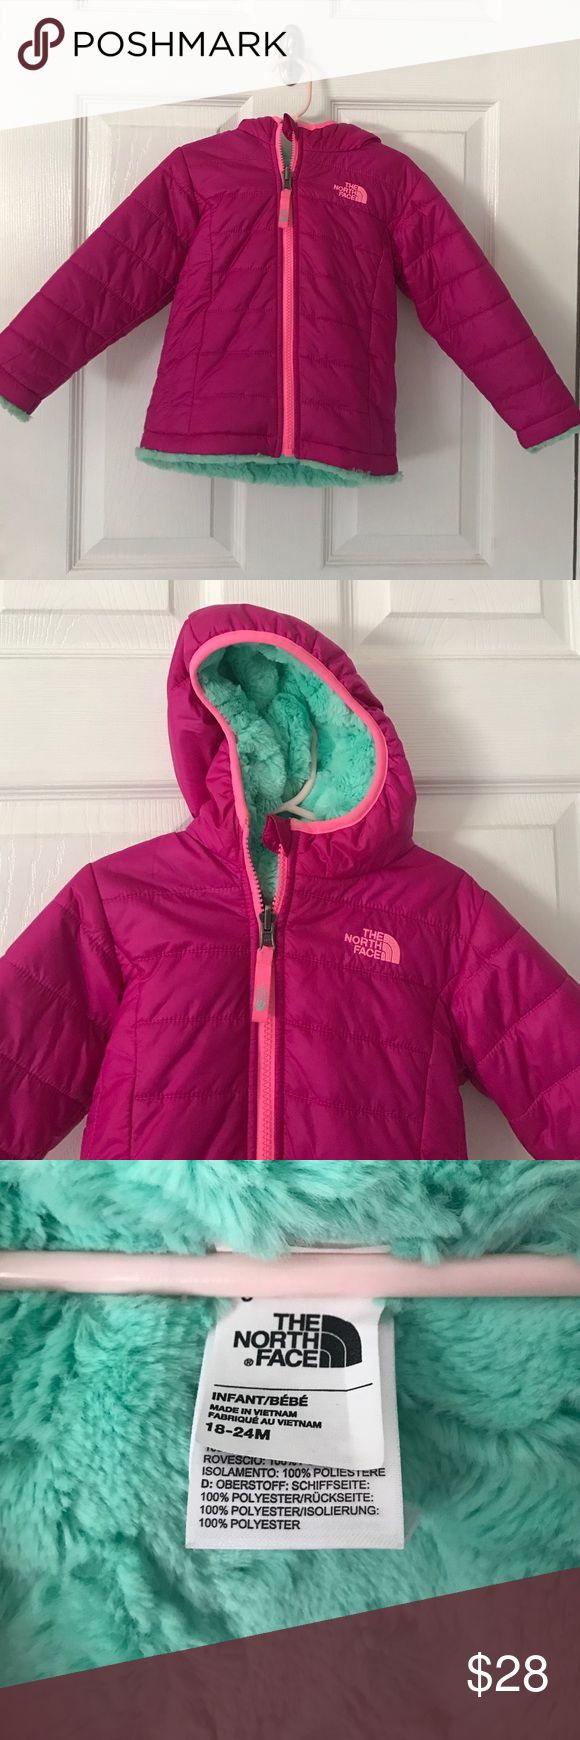 The North Face reversible winter coat Infant girls reversible winter coat. Berry pink and sea foam green. Super warm and extremely cute! I would say this runs big. The North Face Jackets & Coats